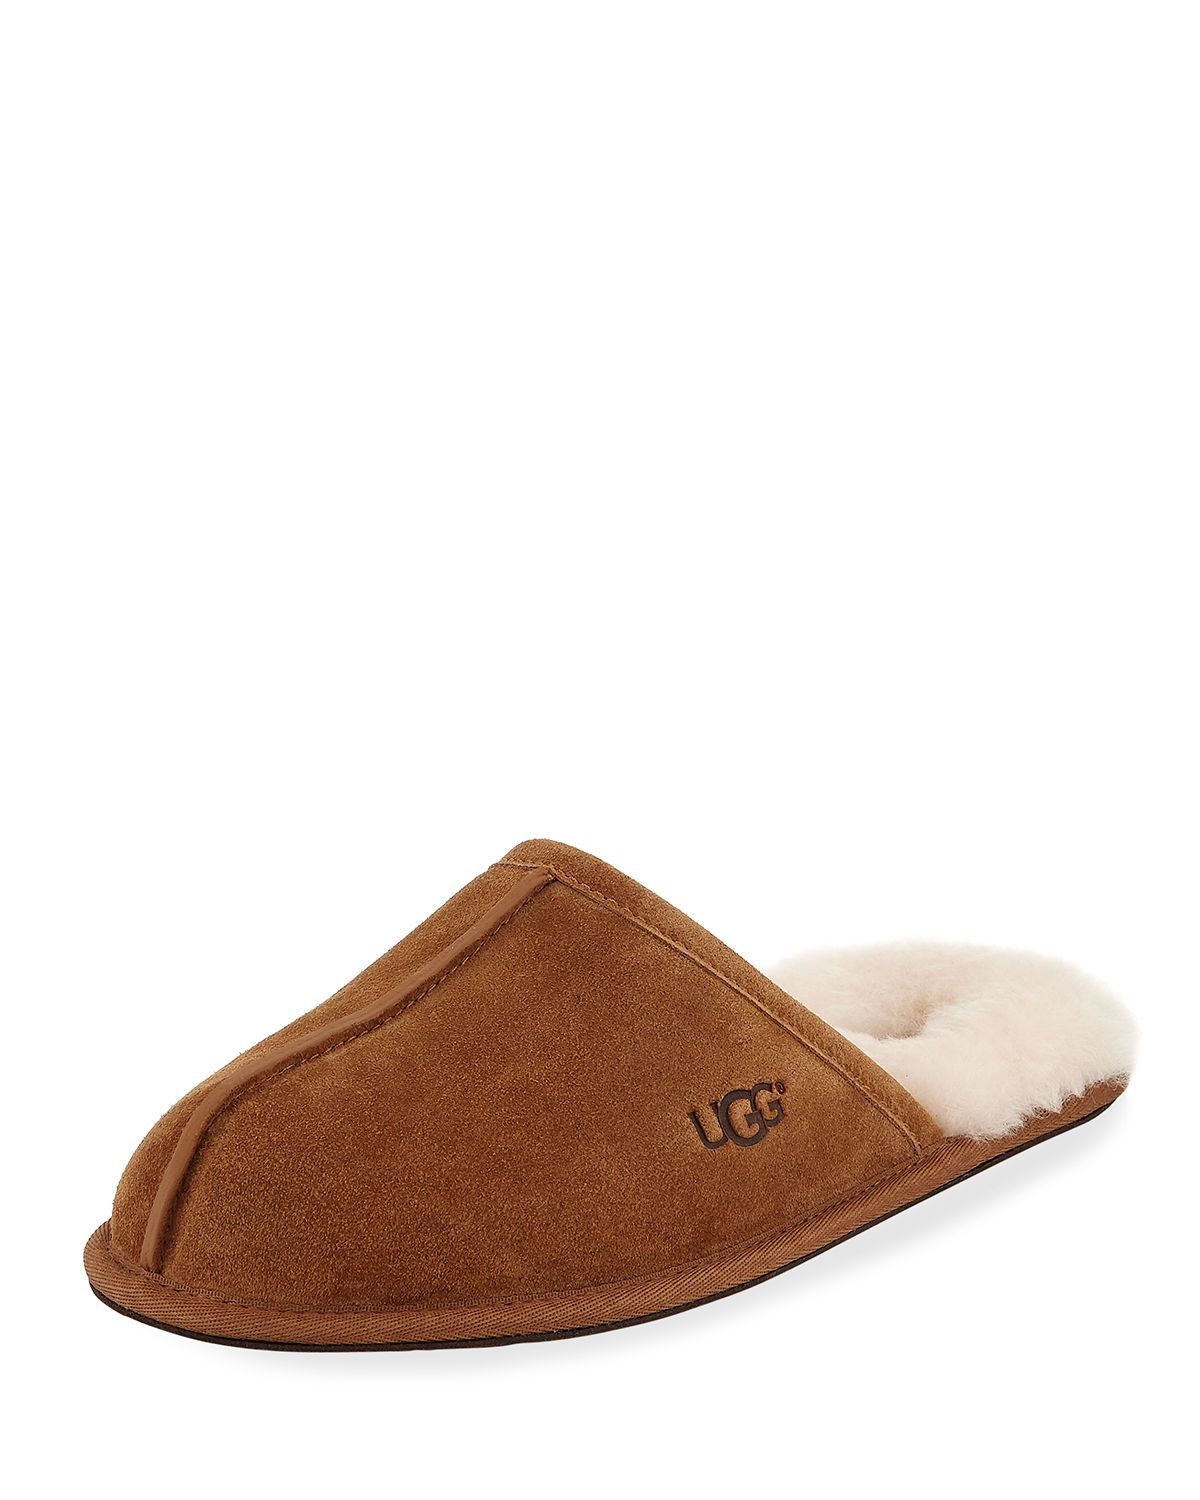 6c3f50af86b UGG MEN'S SCUFF SHEARLING MULE SLIPPER. #ugg #shoes | Ugg ...